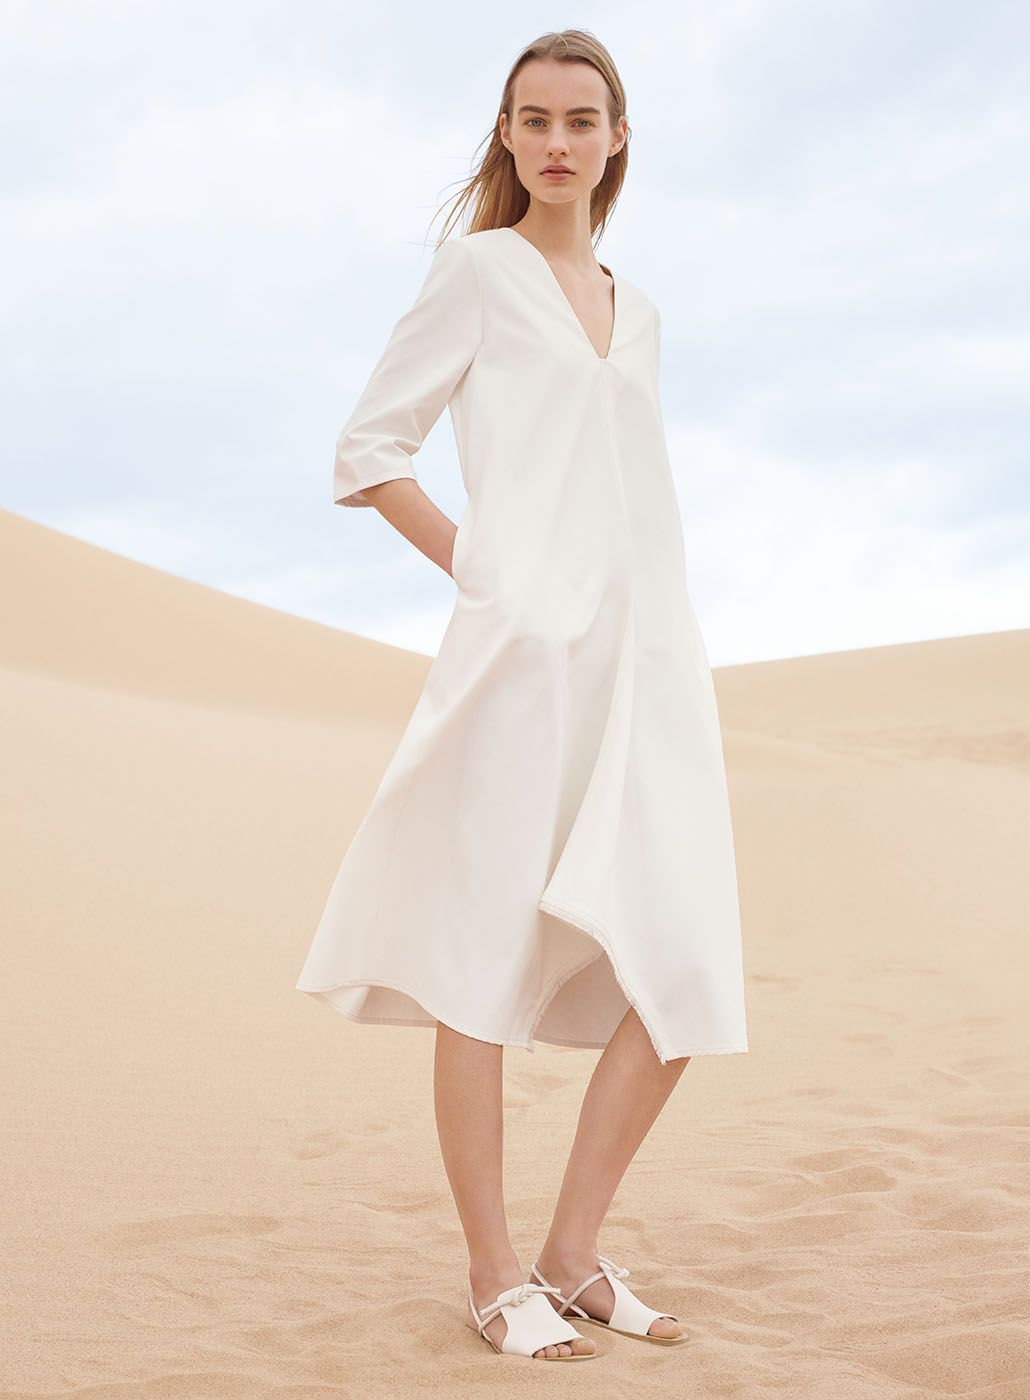 COS Summer Campaign | Style | Fashion, Minimalist fashion ...